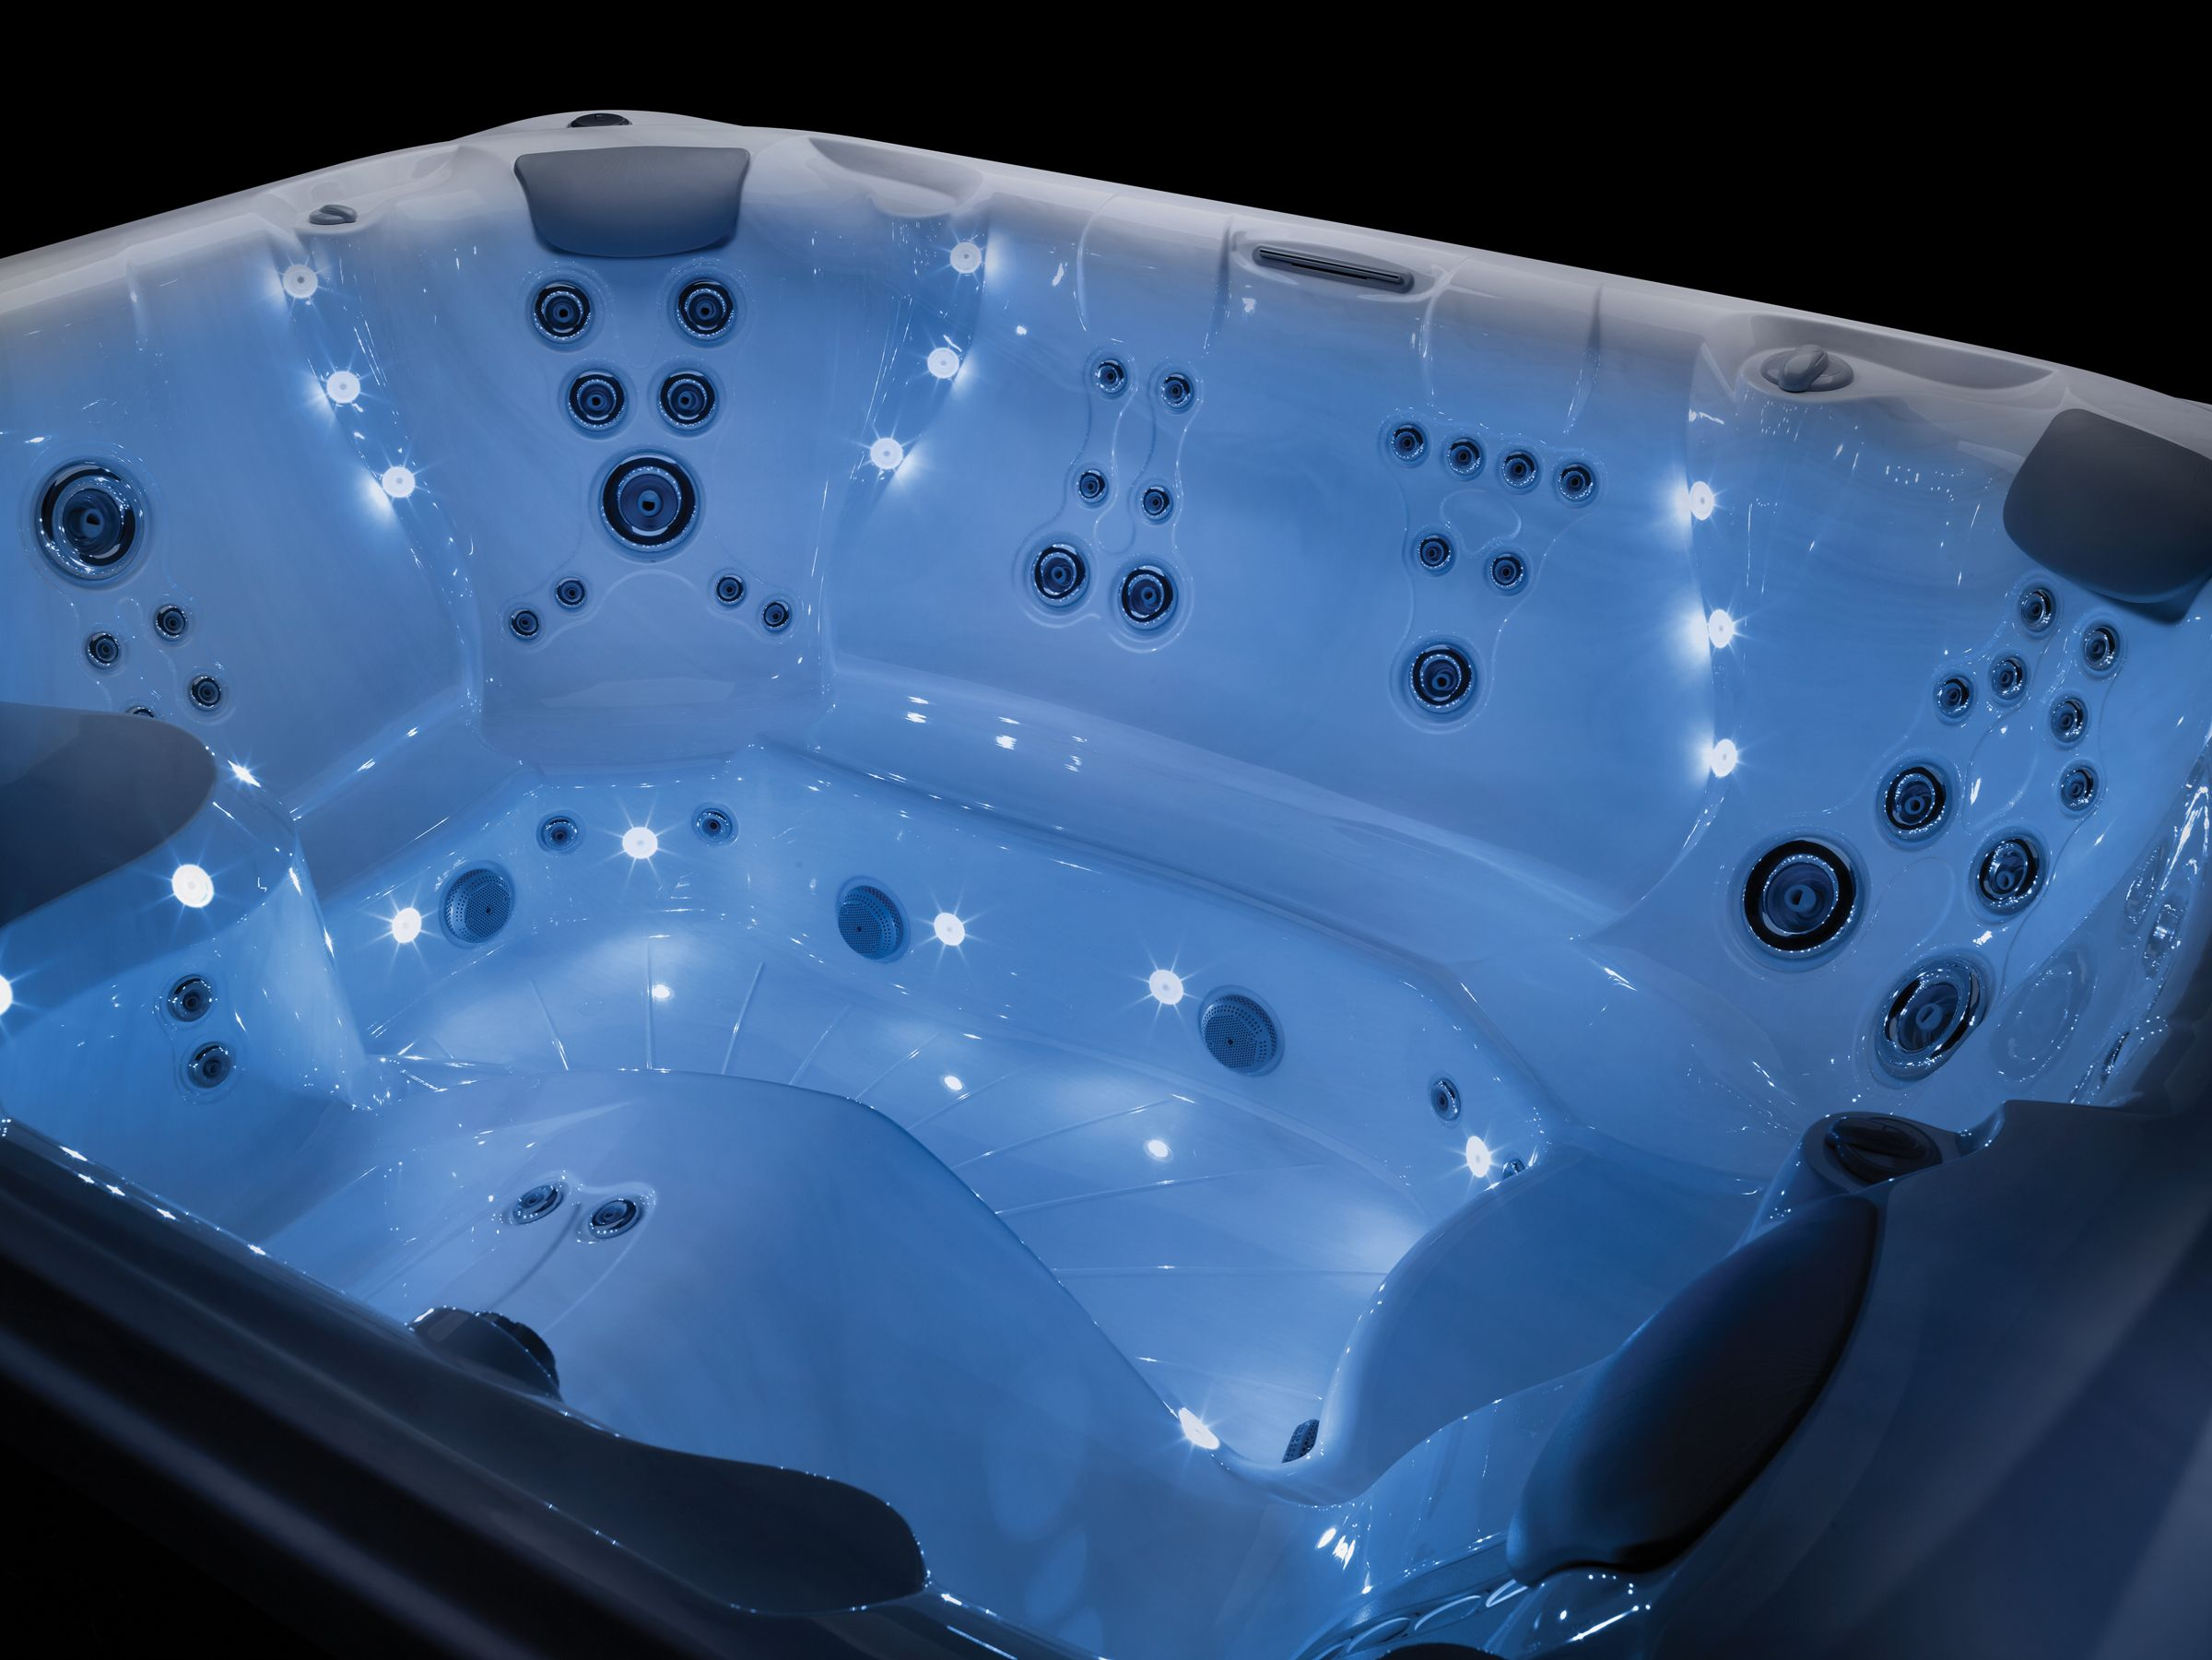 hydromassage manufacturer aquavia buy and spa tubs person uk tub hot